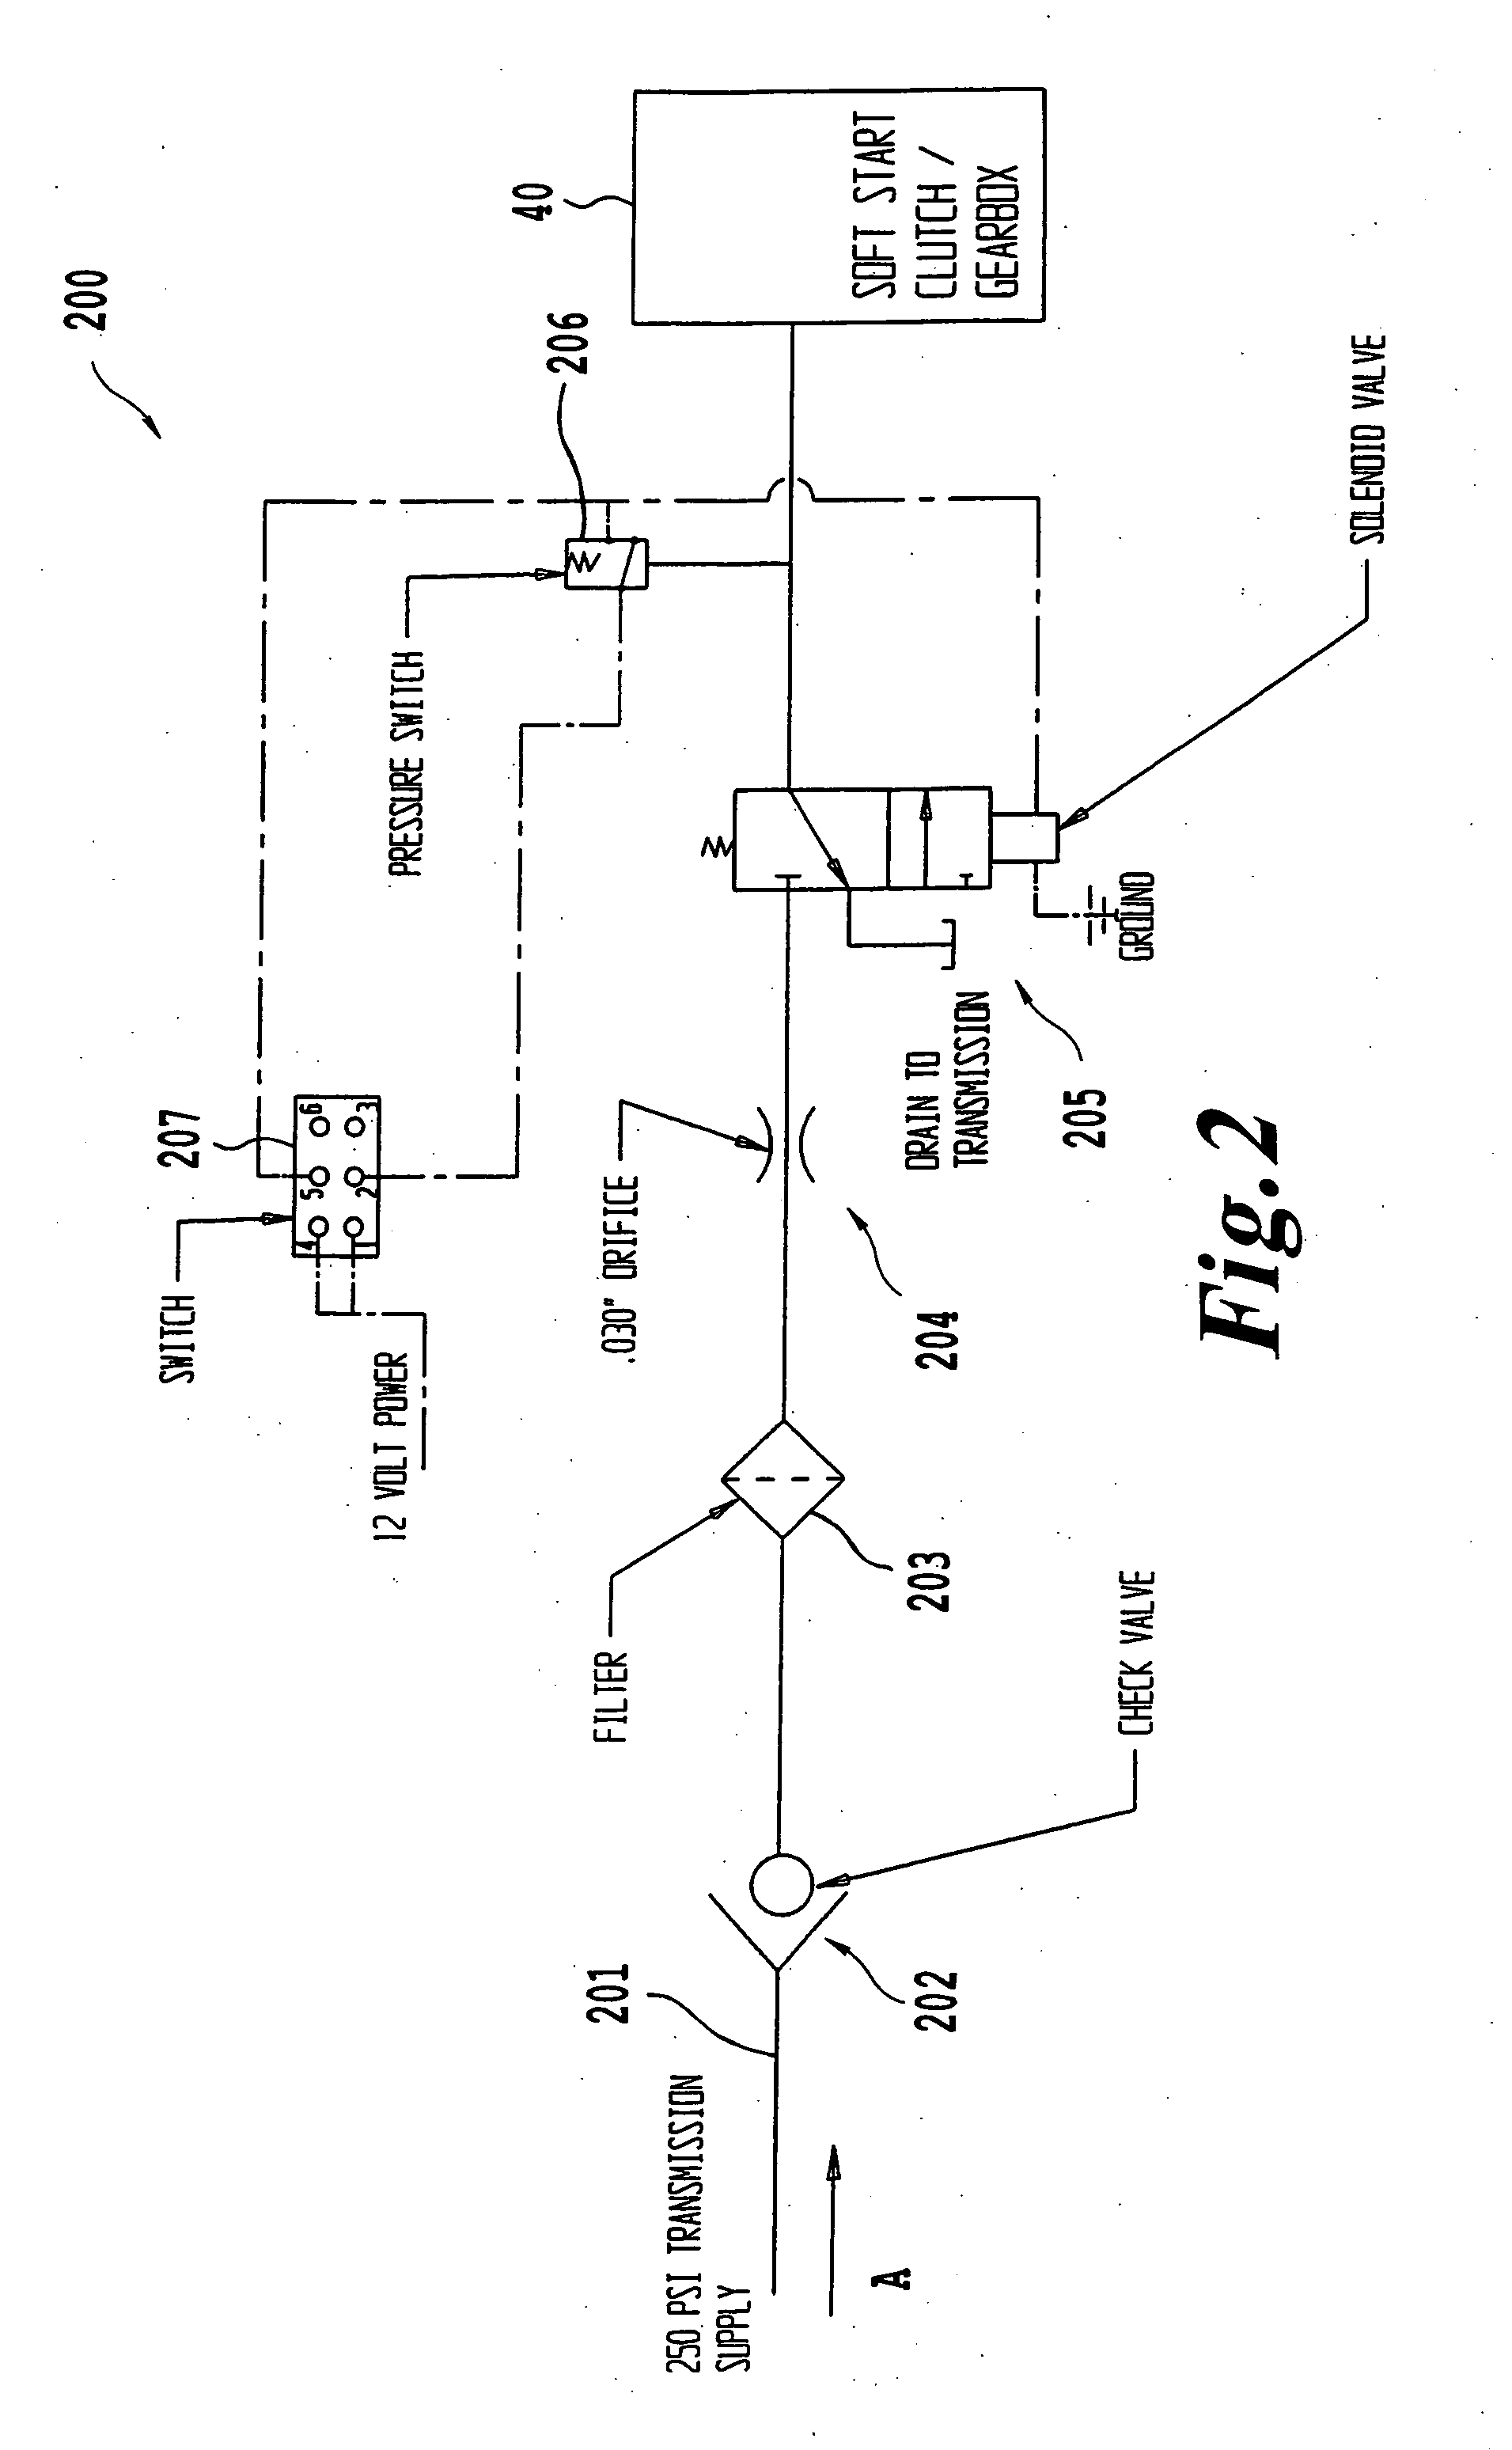 US20060214035A1 20060928 D00003 patent us20060214035 system and method of implementing a soft PTO Switch Wiring Diagram for Massey Furgeson at bakdesigns.co